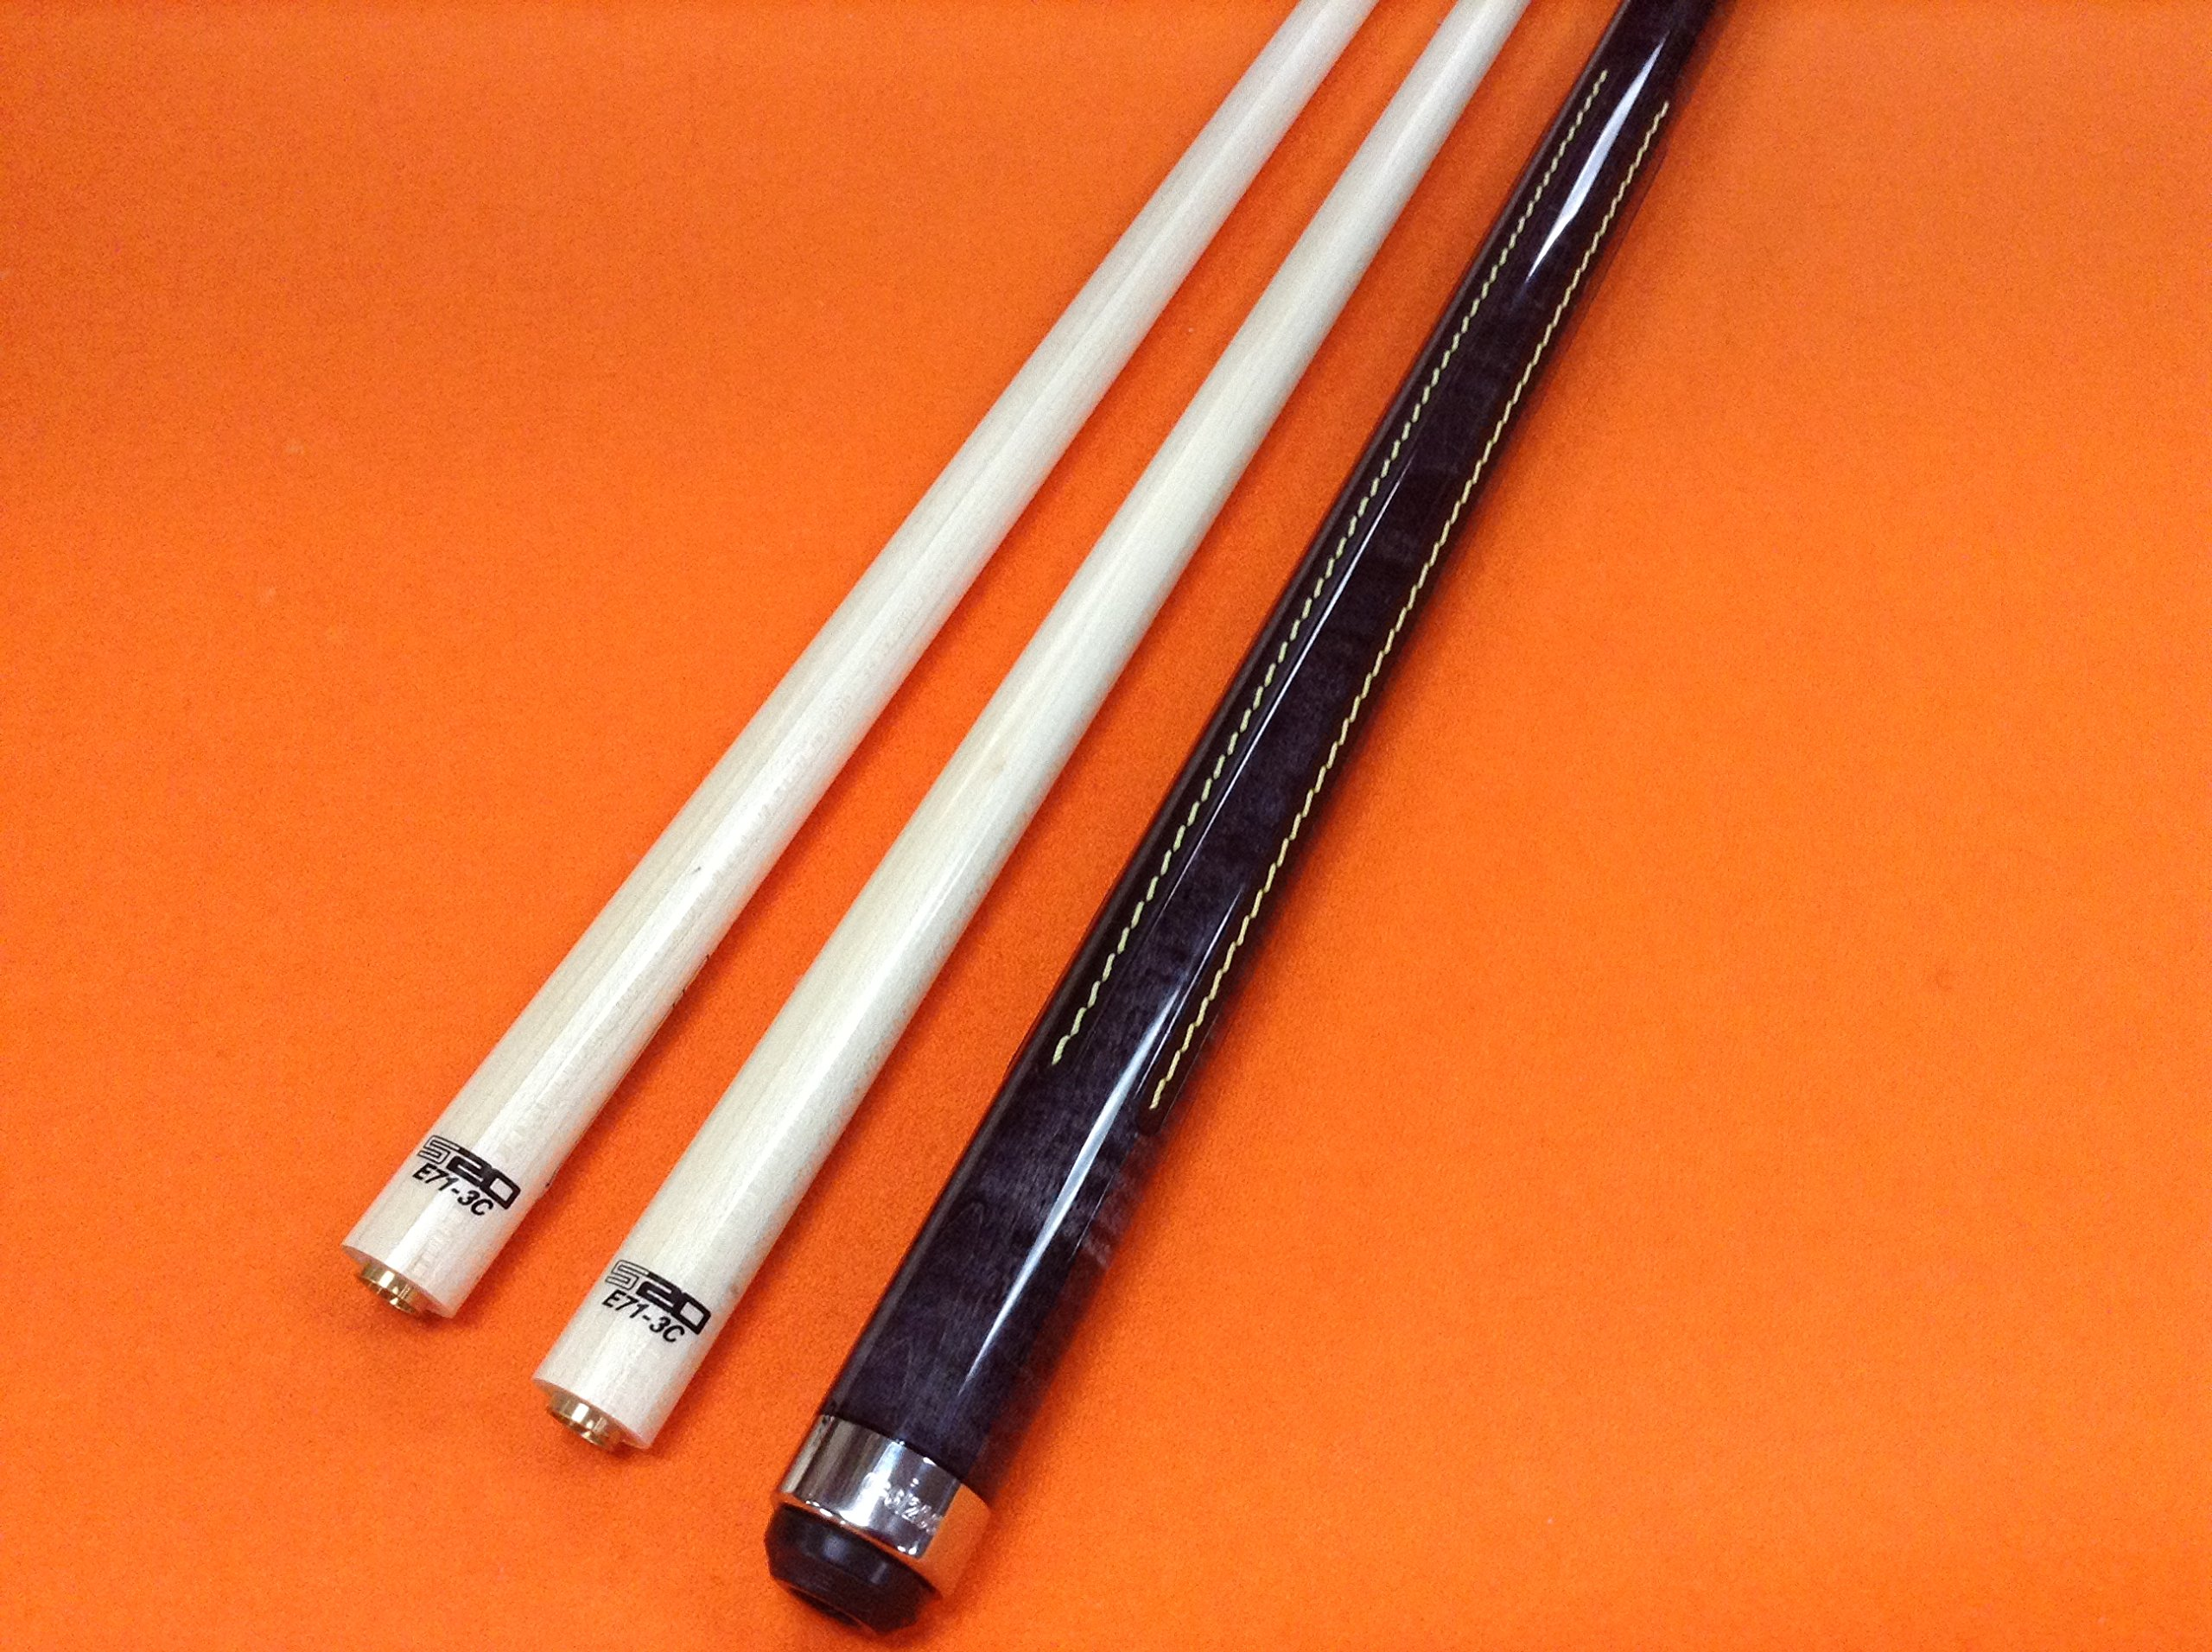 LONGONI CAROM CUE CREMONA CENERE WITH TWO S20 SHAFTS (limited edition)